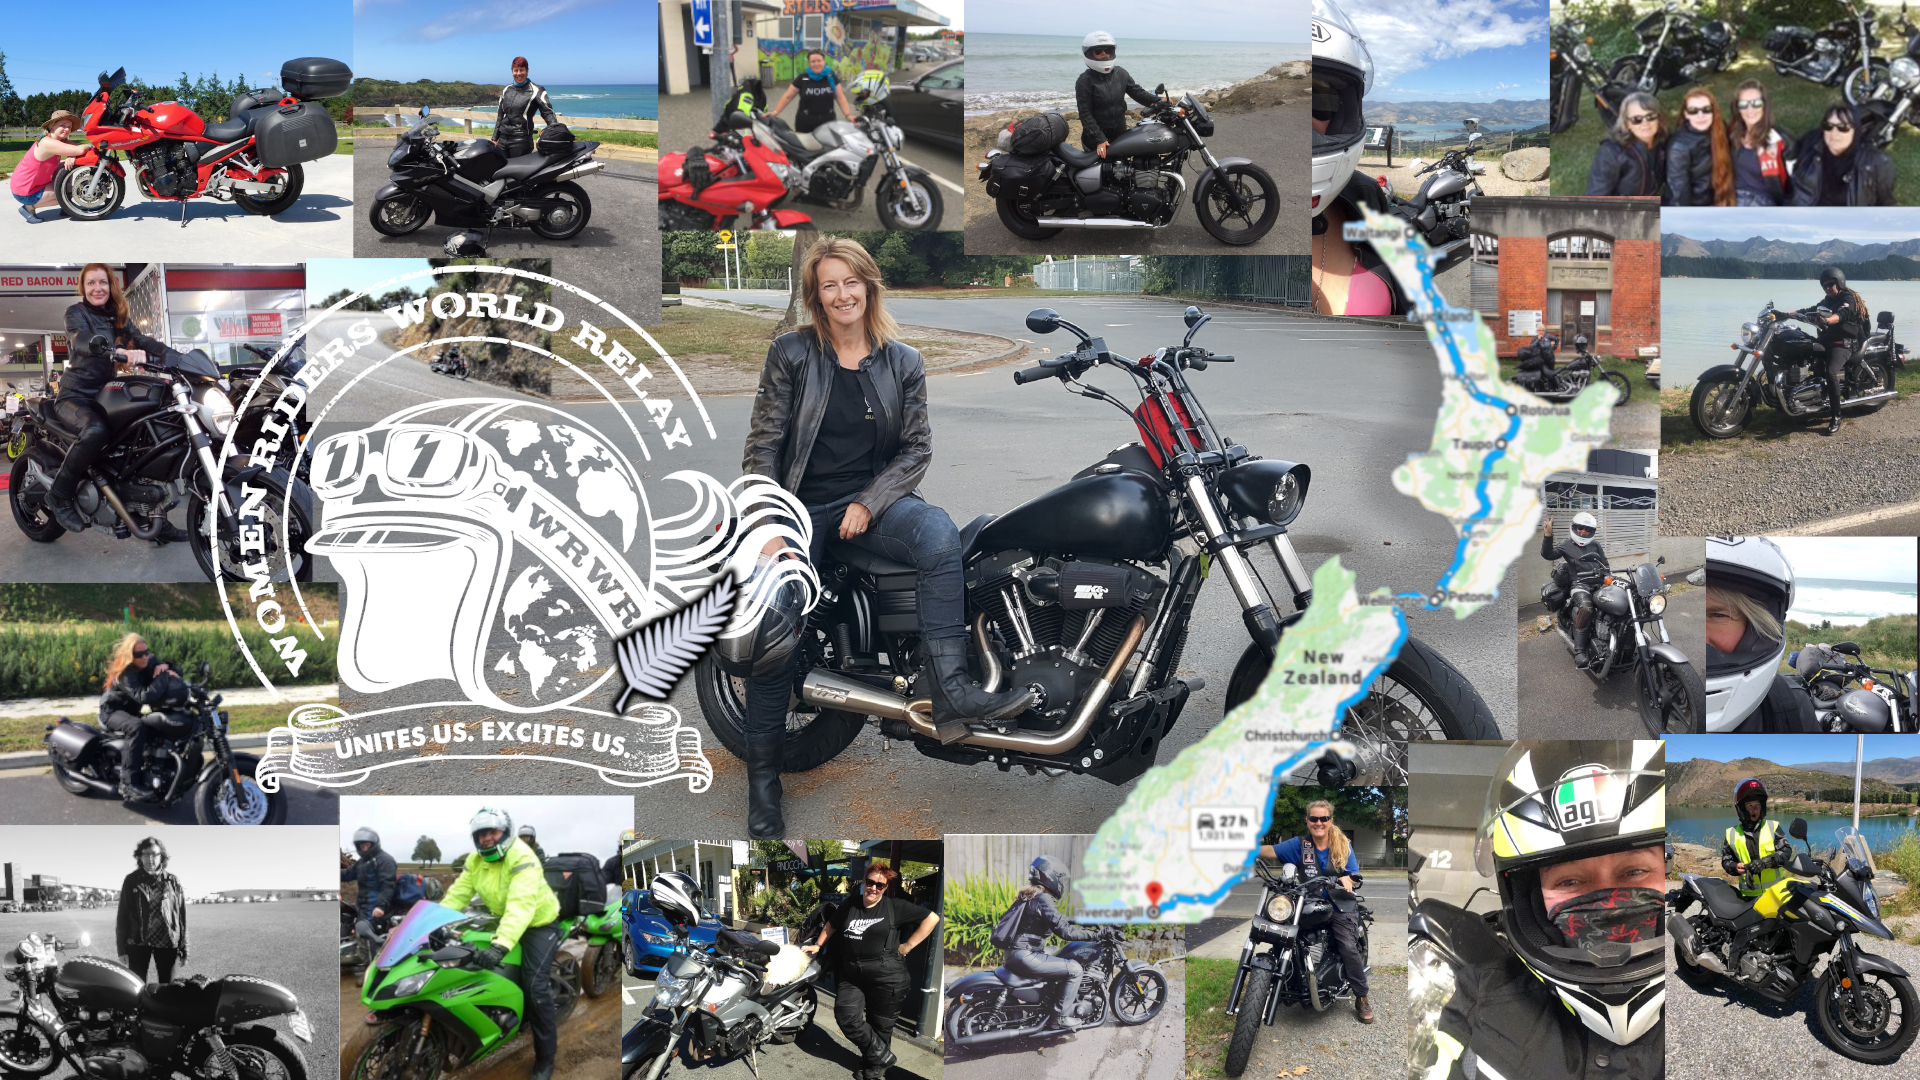 Women motorcyclists who are organising the Women Riders World Relay in New Zealand